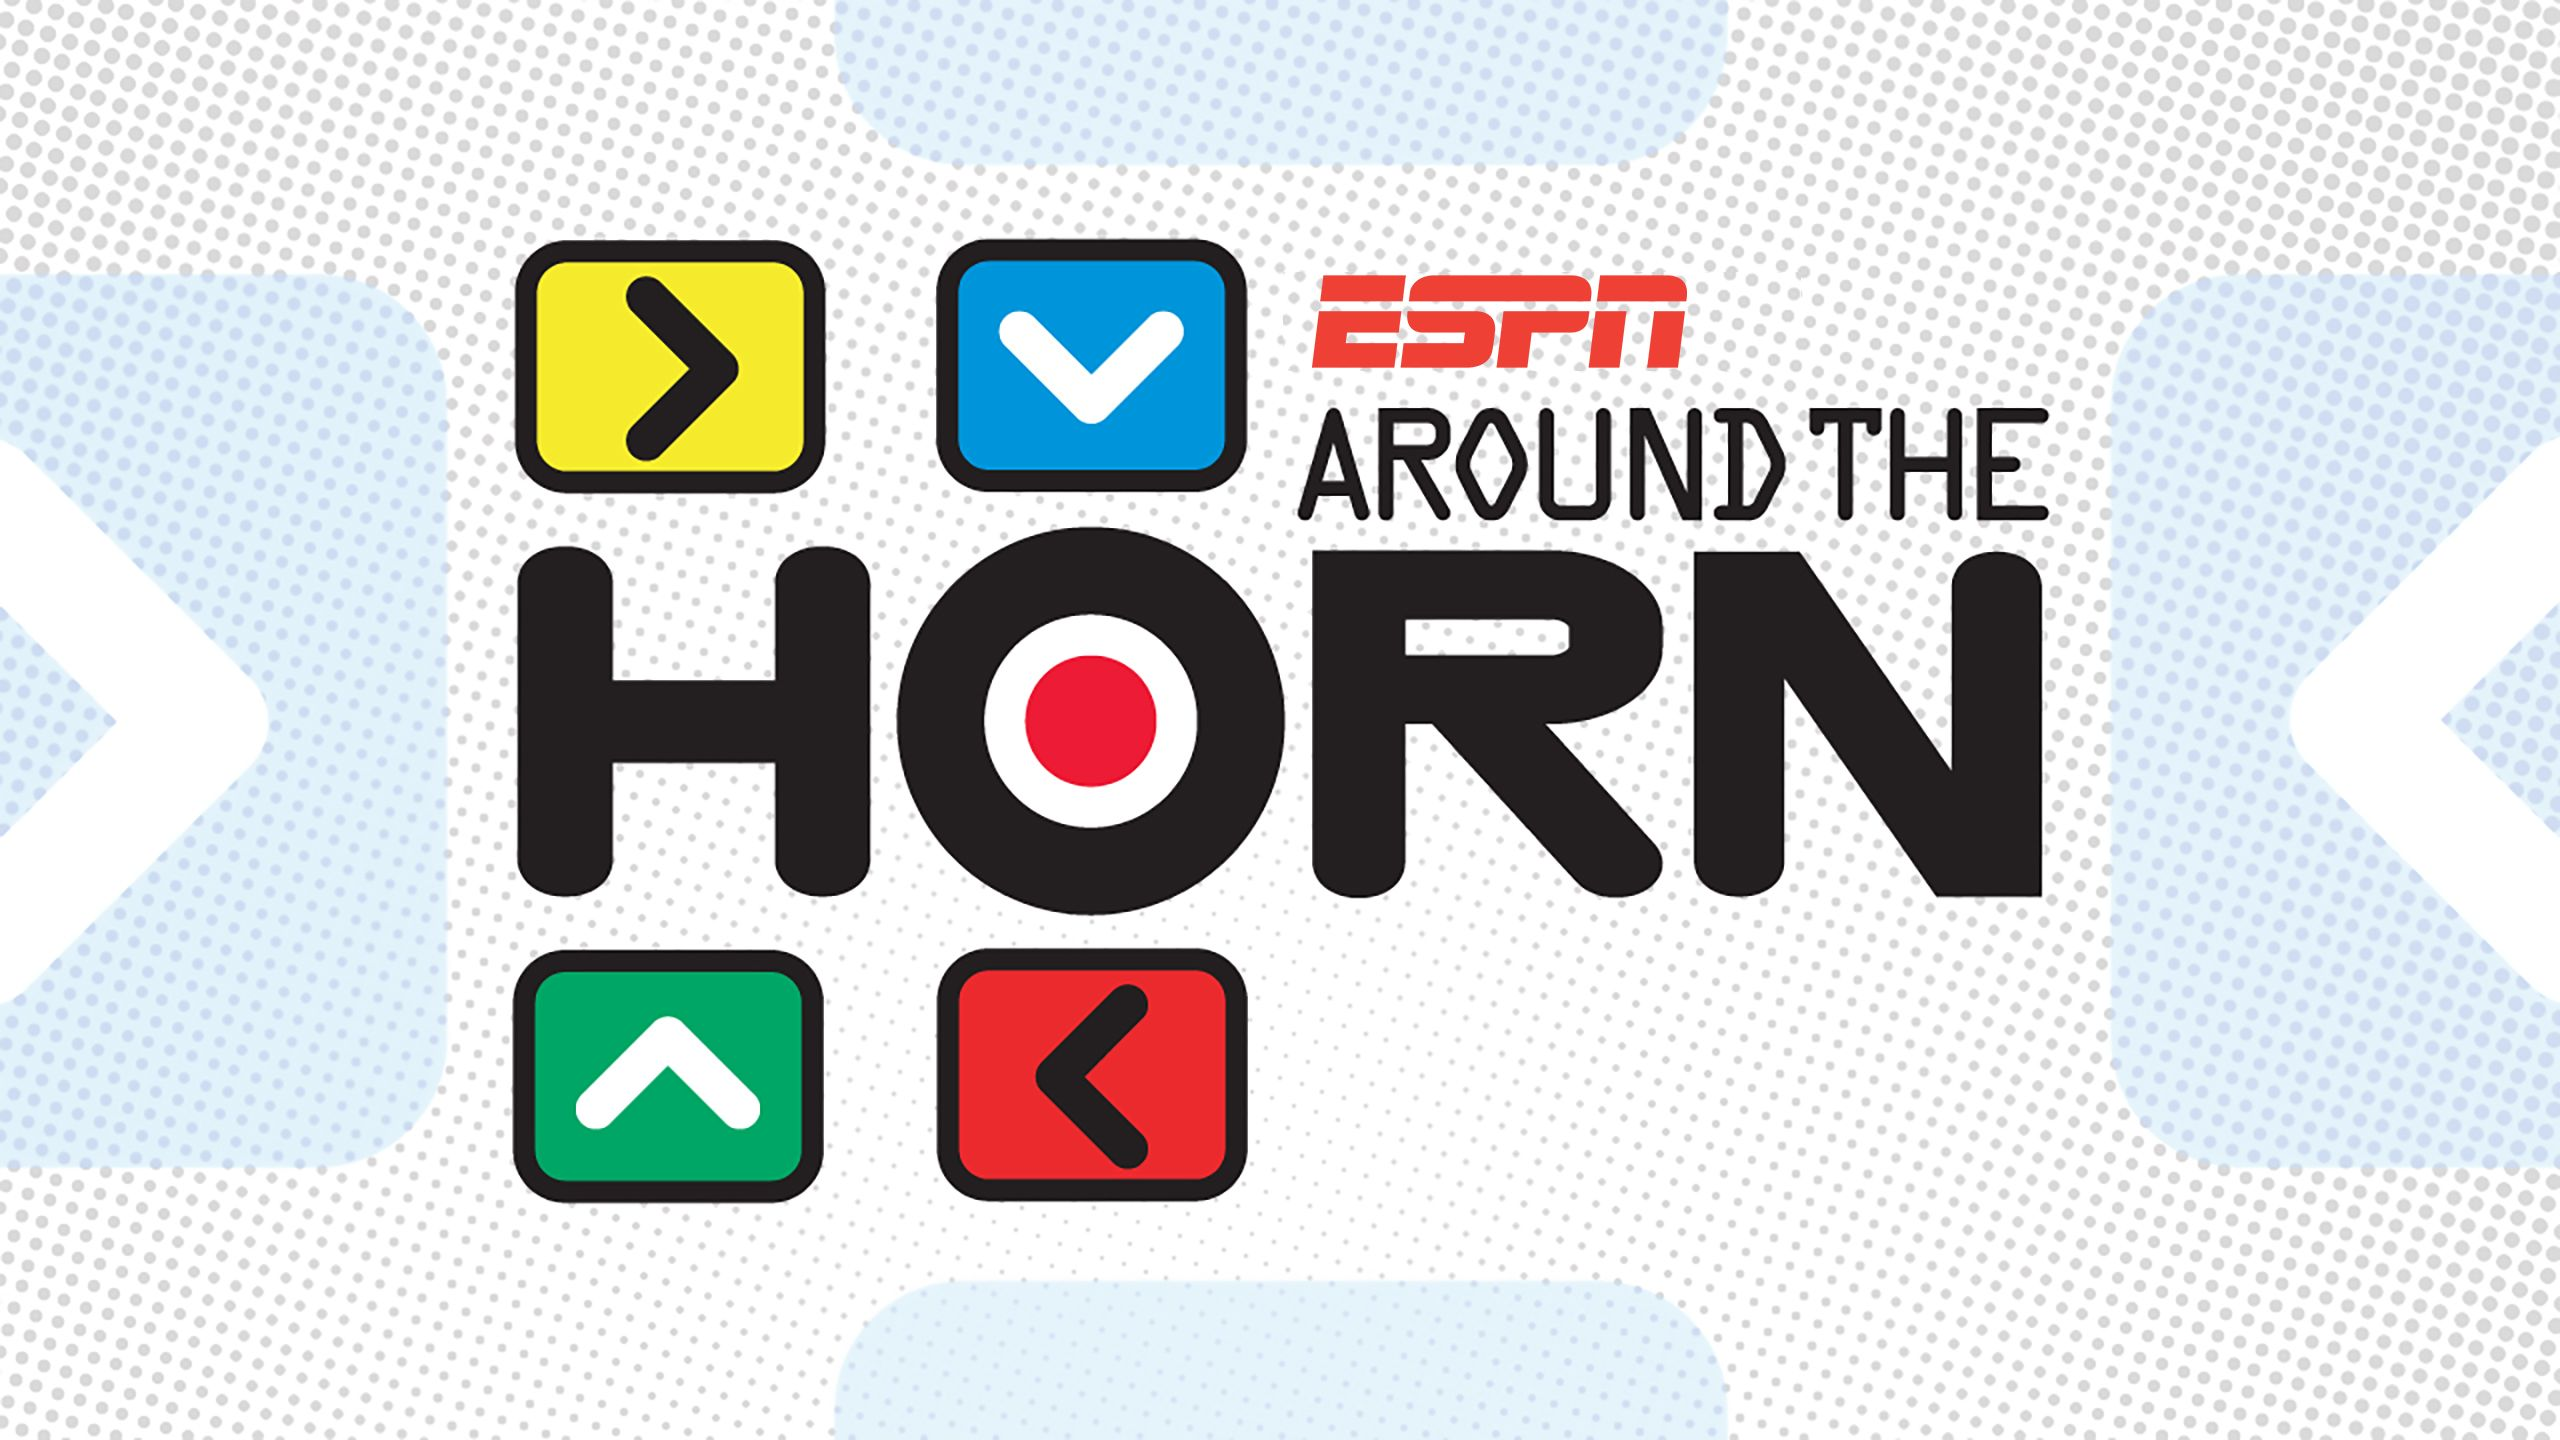 Thu, 5/17 - Around The Horn